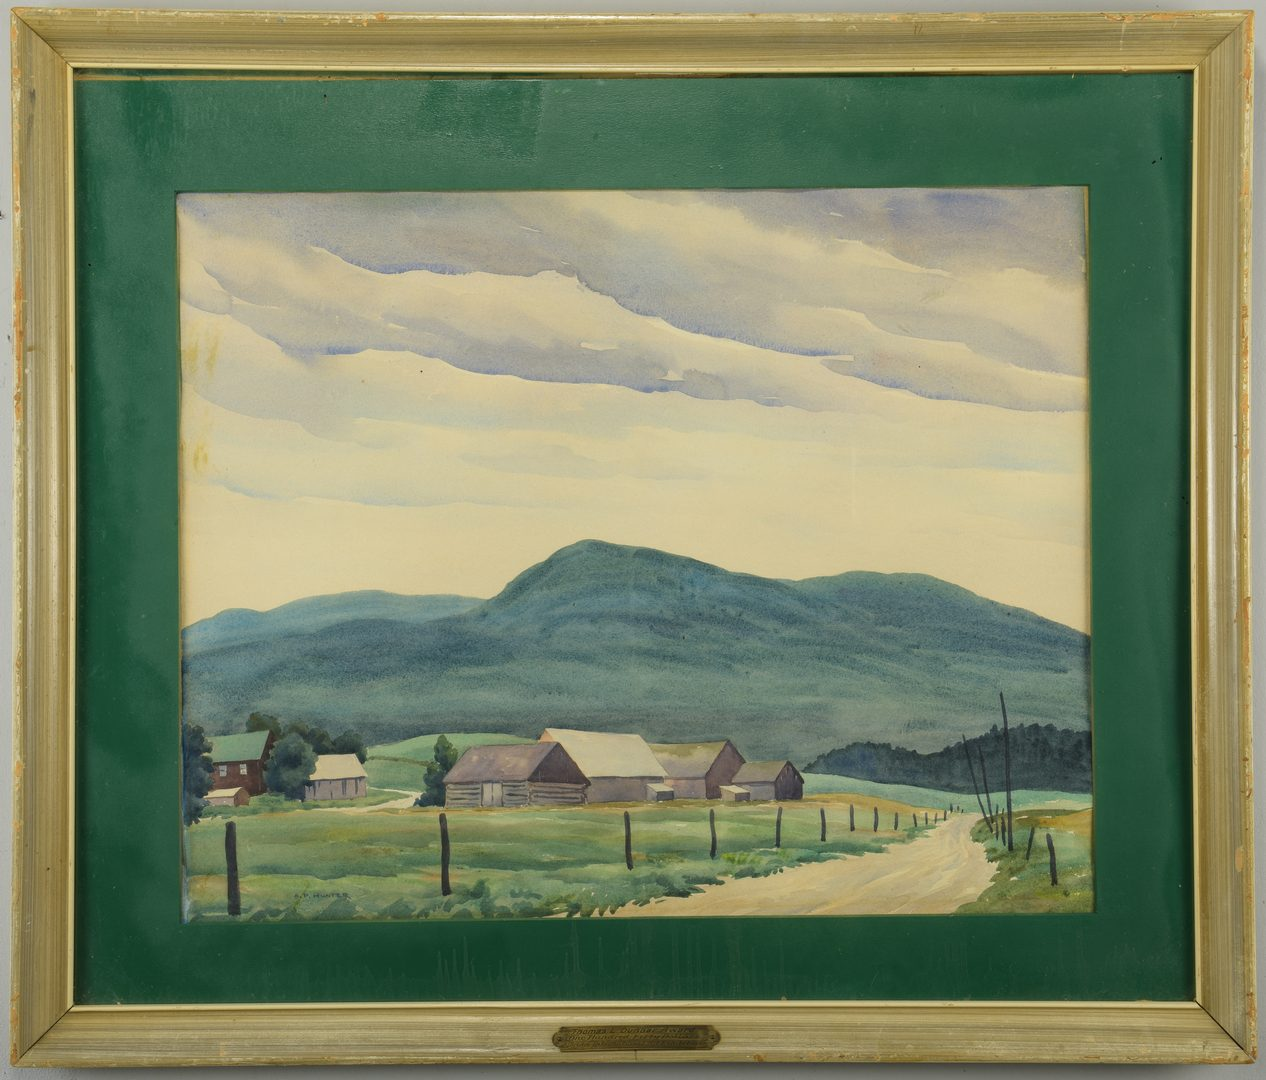 Lot 467: A.P. Hunter  Mountain Landscape